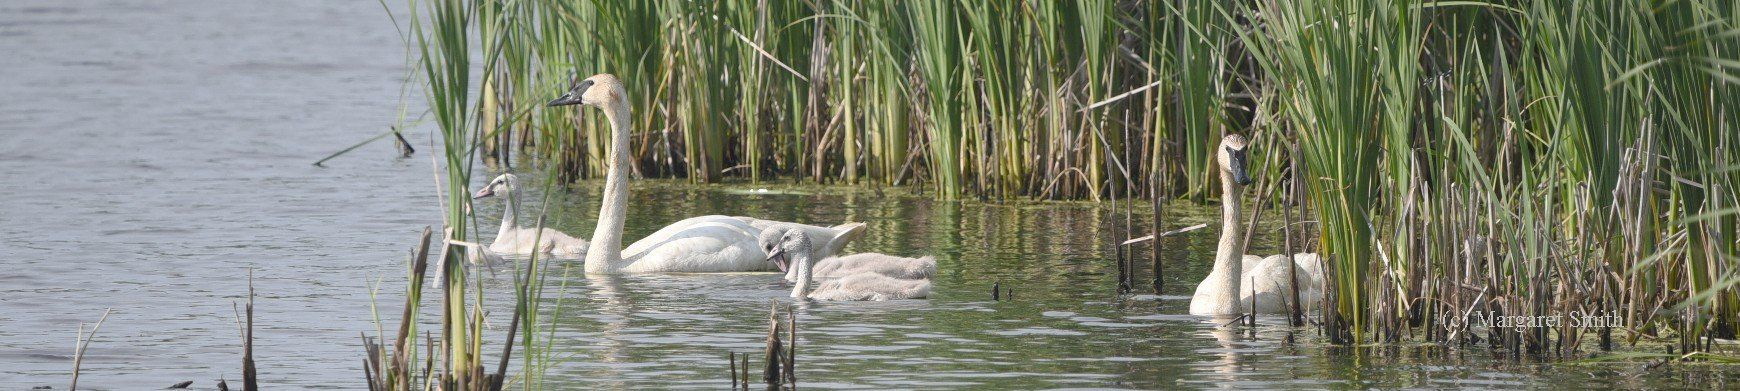 Trumpeter Swans have very strong family bonds.  Swan cygnets remain with their parents through their first summer and winter, returning to their natal grounds with their parents in early spring.